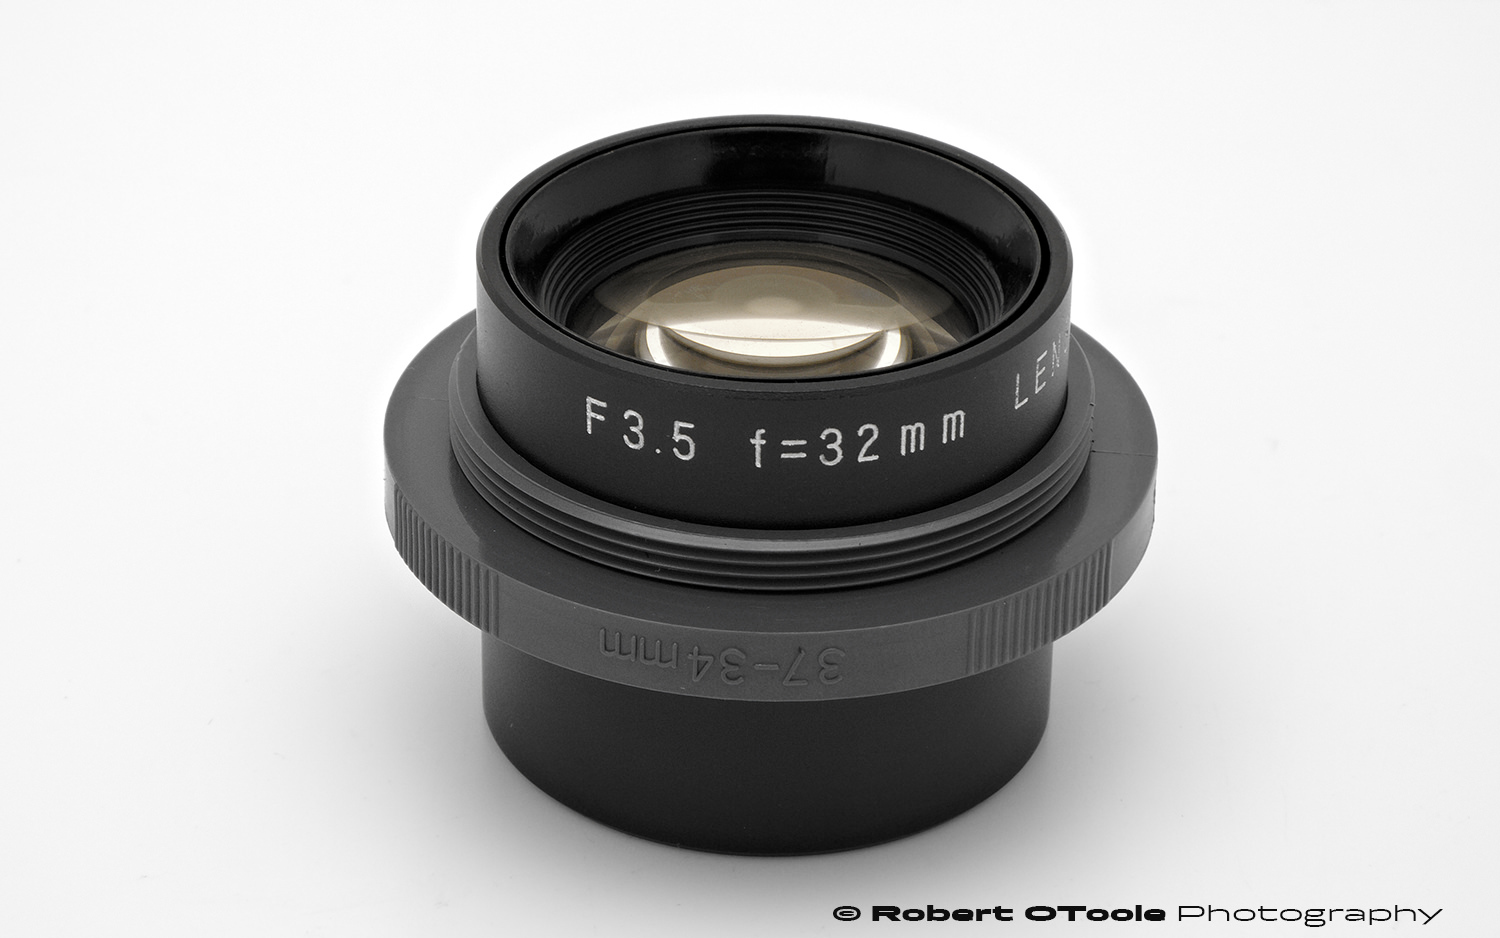 Yashinon-32mm-lens-with-adapter-Robert-OToole-Photography.JPG